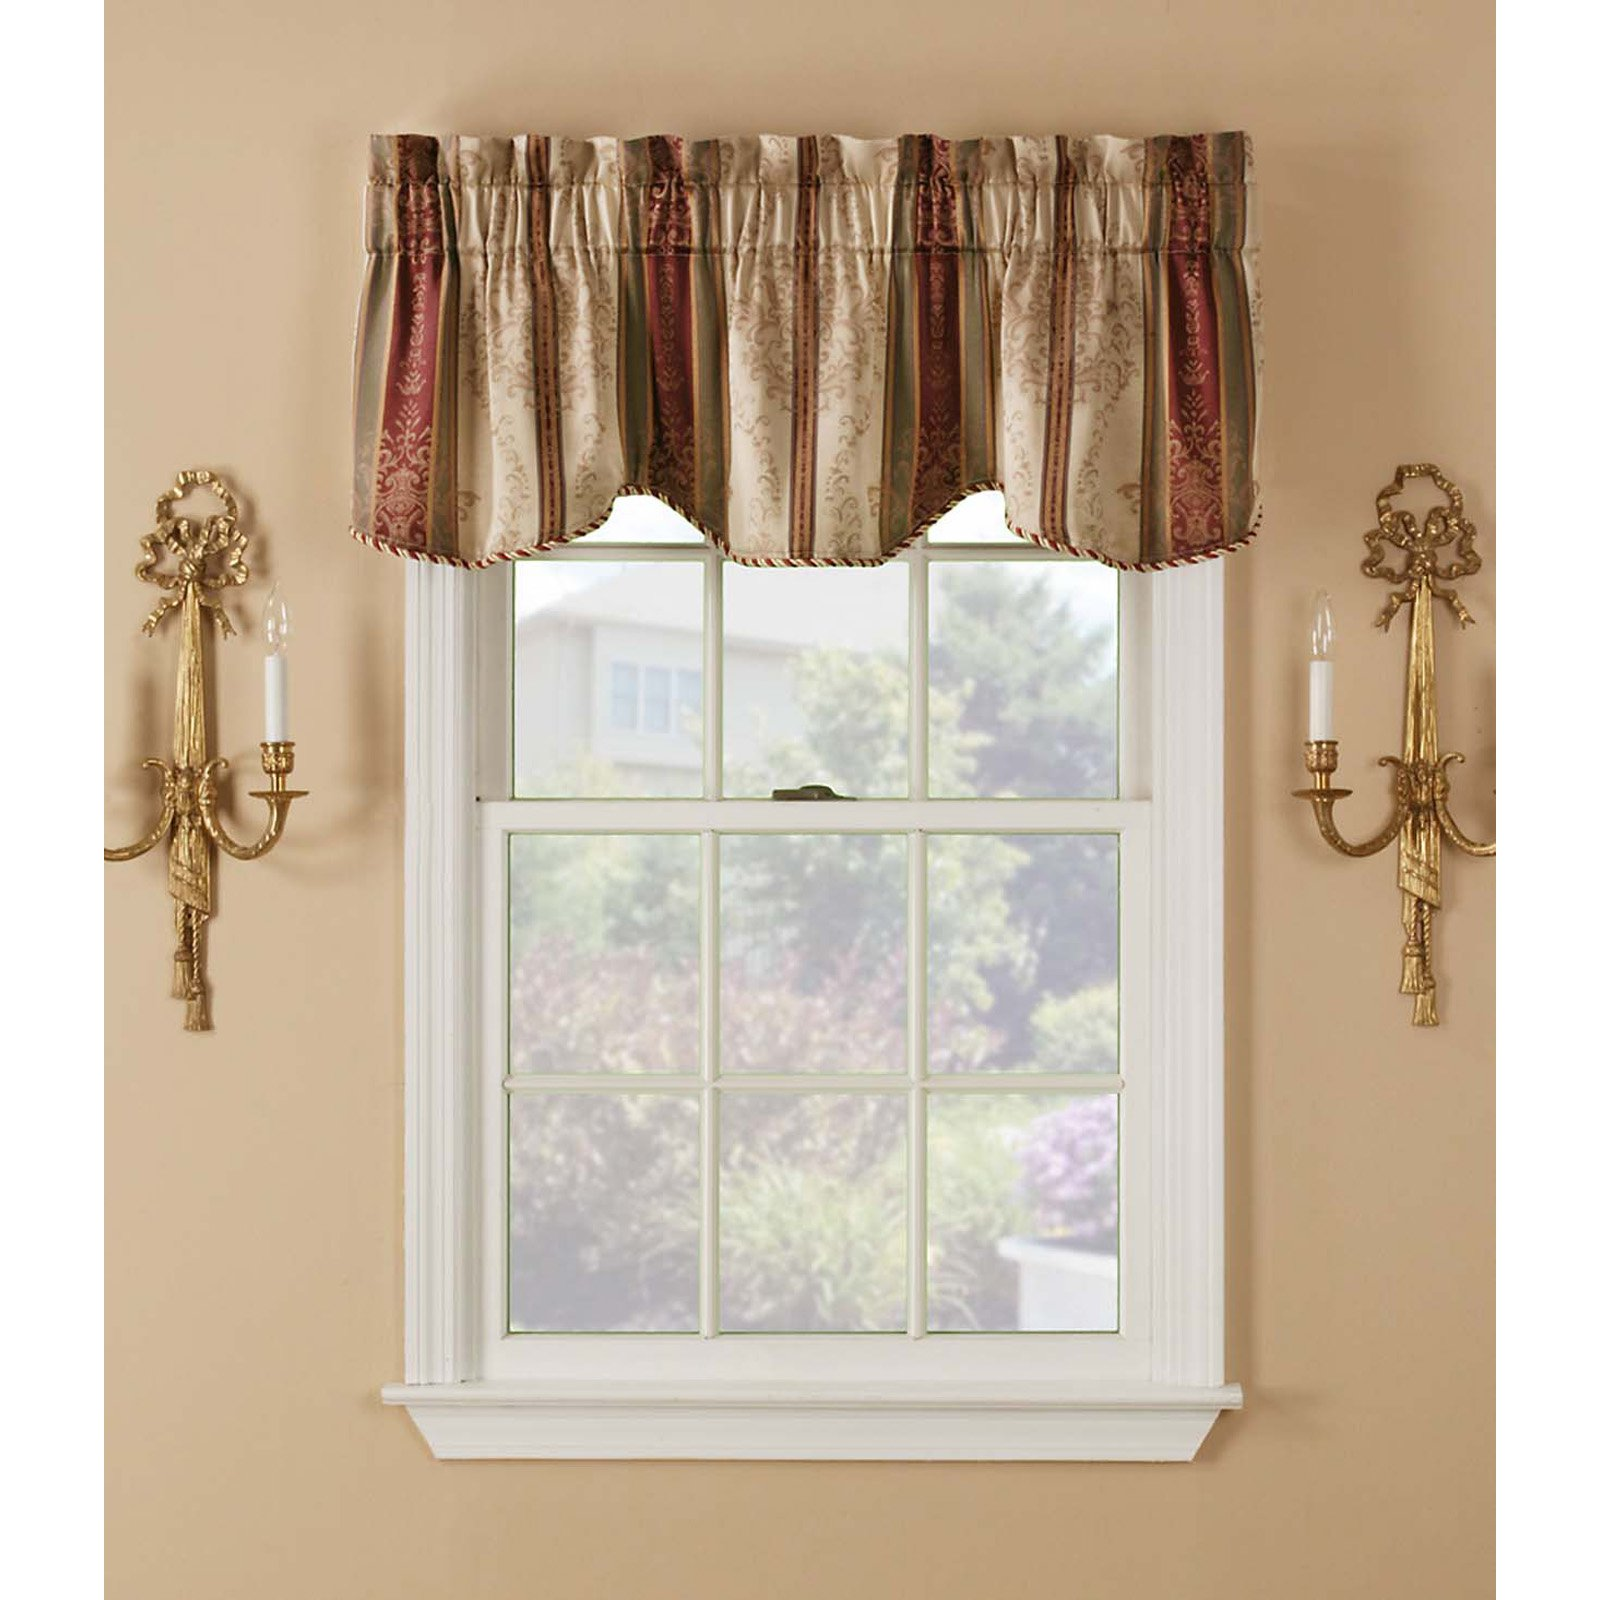 Window Accents Tuscan Stripe Scroll Jacquards Rod Pocket Valance Pair